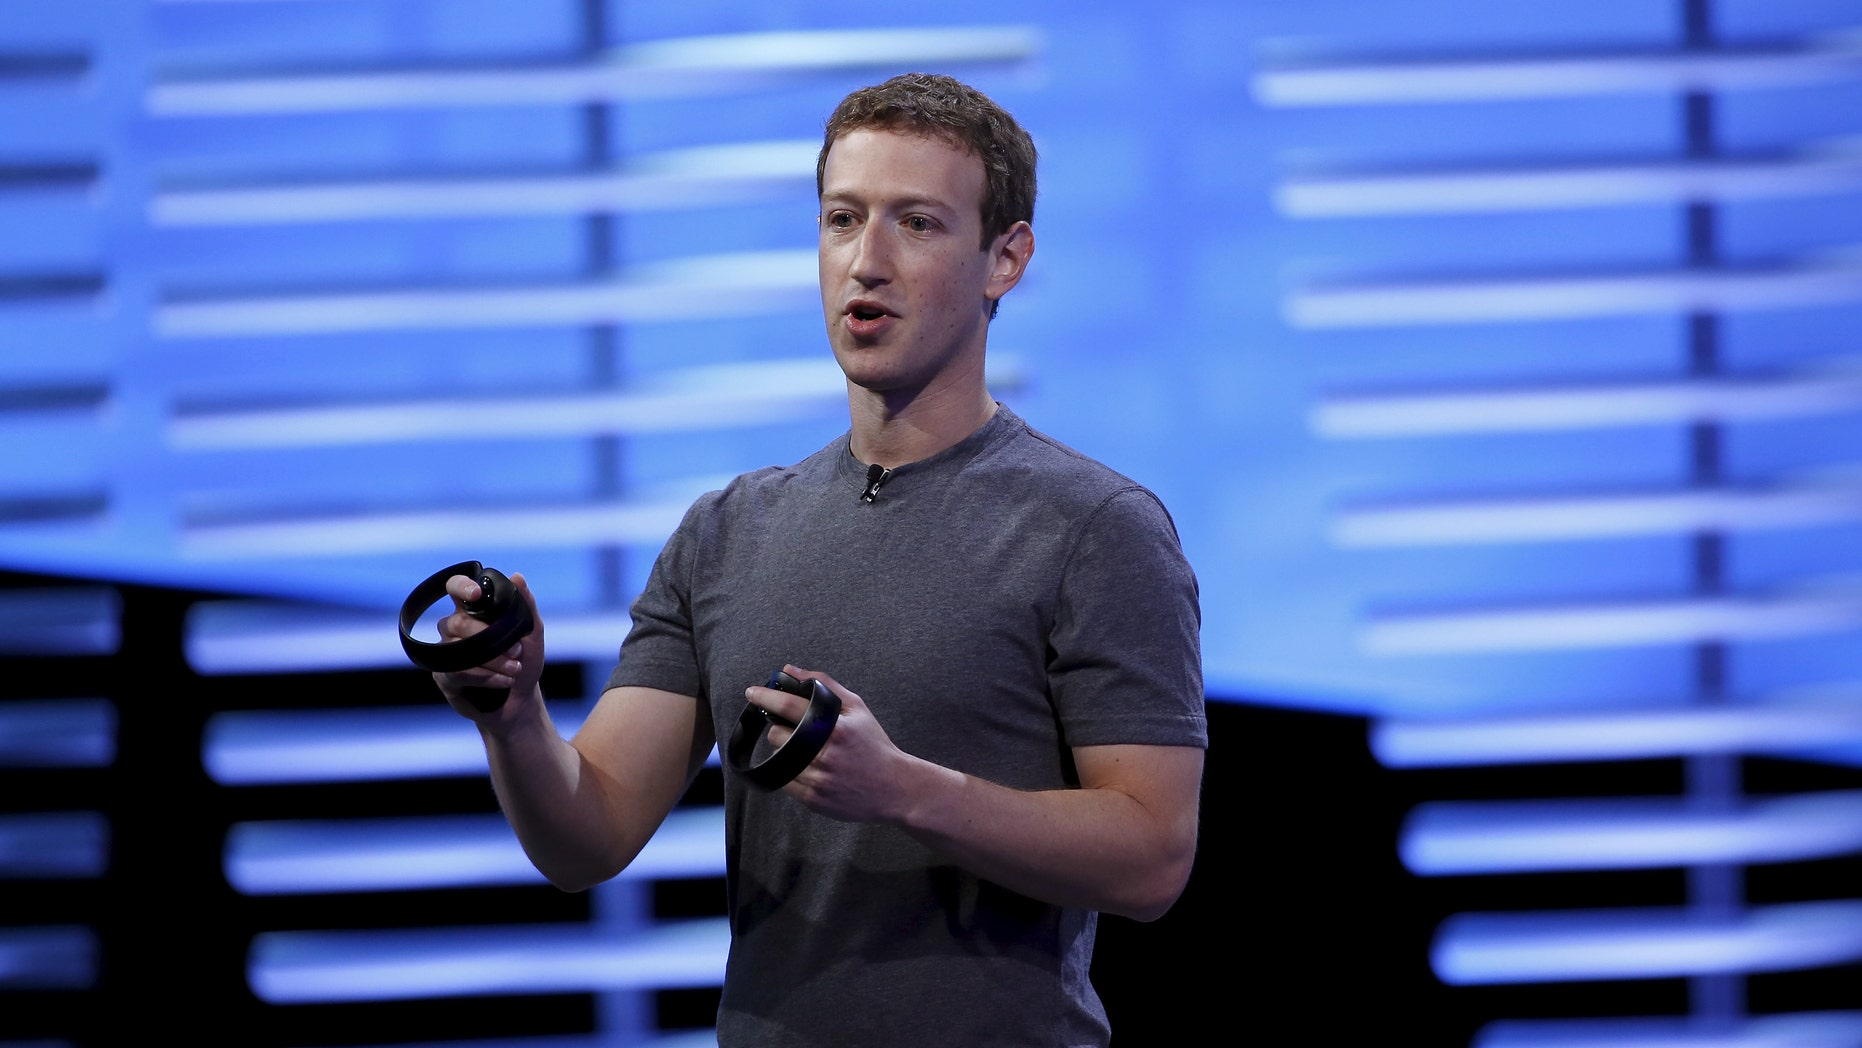 File photo - Facebook CEO Mark Zuckerberg holds a pair of the touch controllers for the Oculus Rift virtual reality headsets on stage during the Facebook F8 conference in San Francisco, California April 12, 2016. (REUTERS/Stephen Lam)